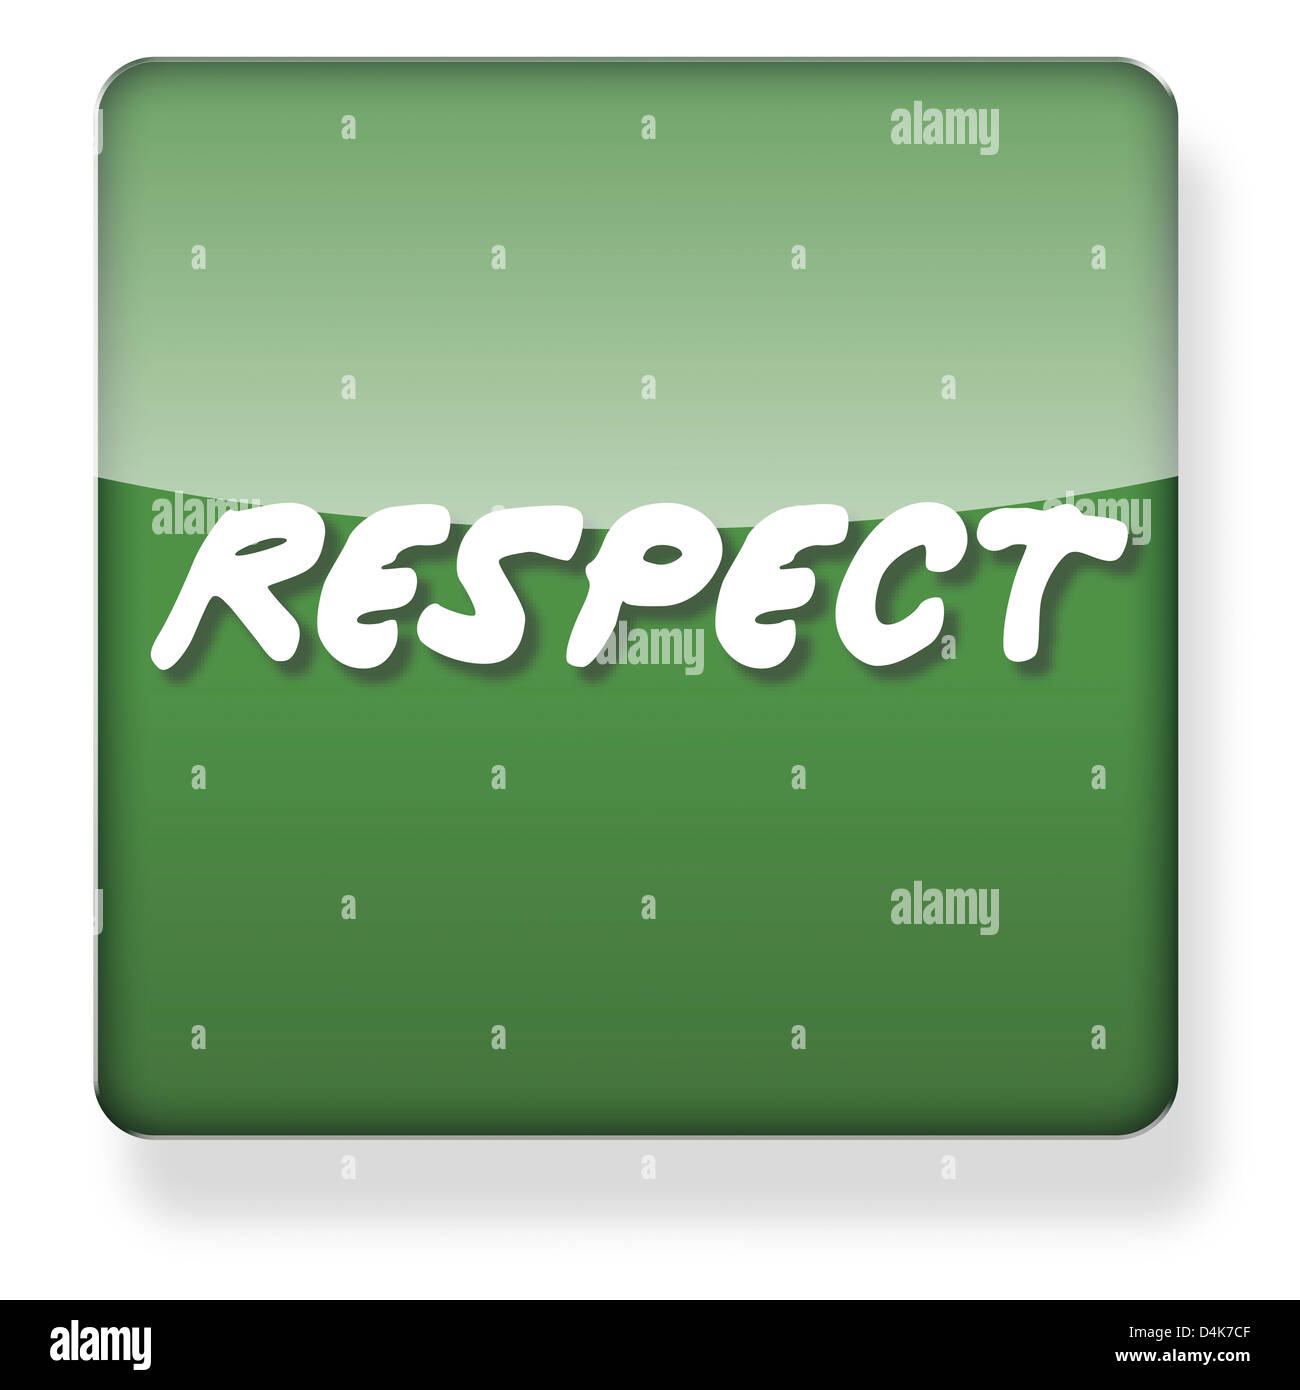 Respect Party logo as an app icon. Clipping path included. - Stock Image